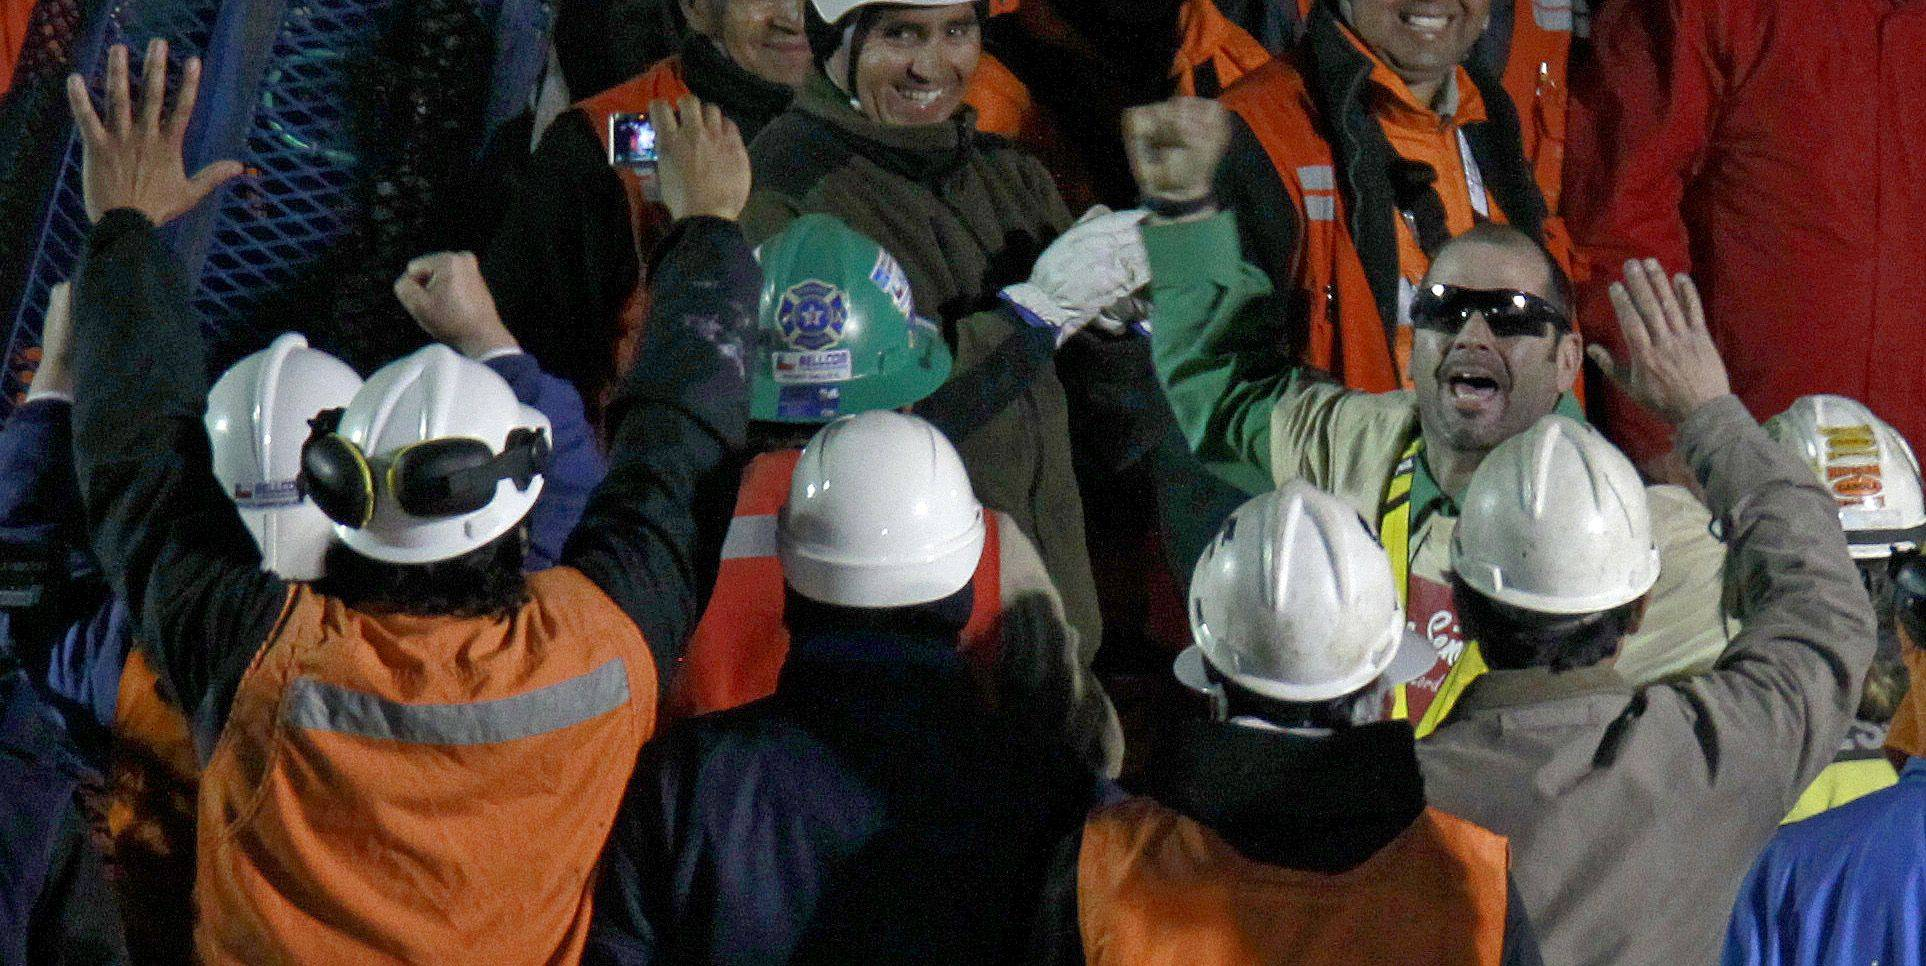 Rescued miner Mario Sepulveda Espina, right, salutes after being rescued from the the collapsed San Jose gold and copper mine where he was trapped with 32 other miners for over two months near Copiapo, Chile, early Wednesday Oct. 13, 2010.